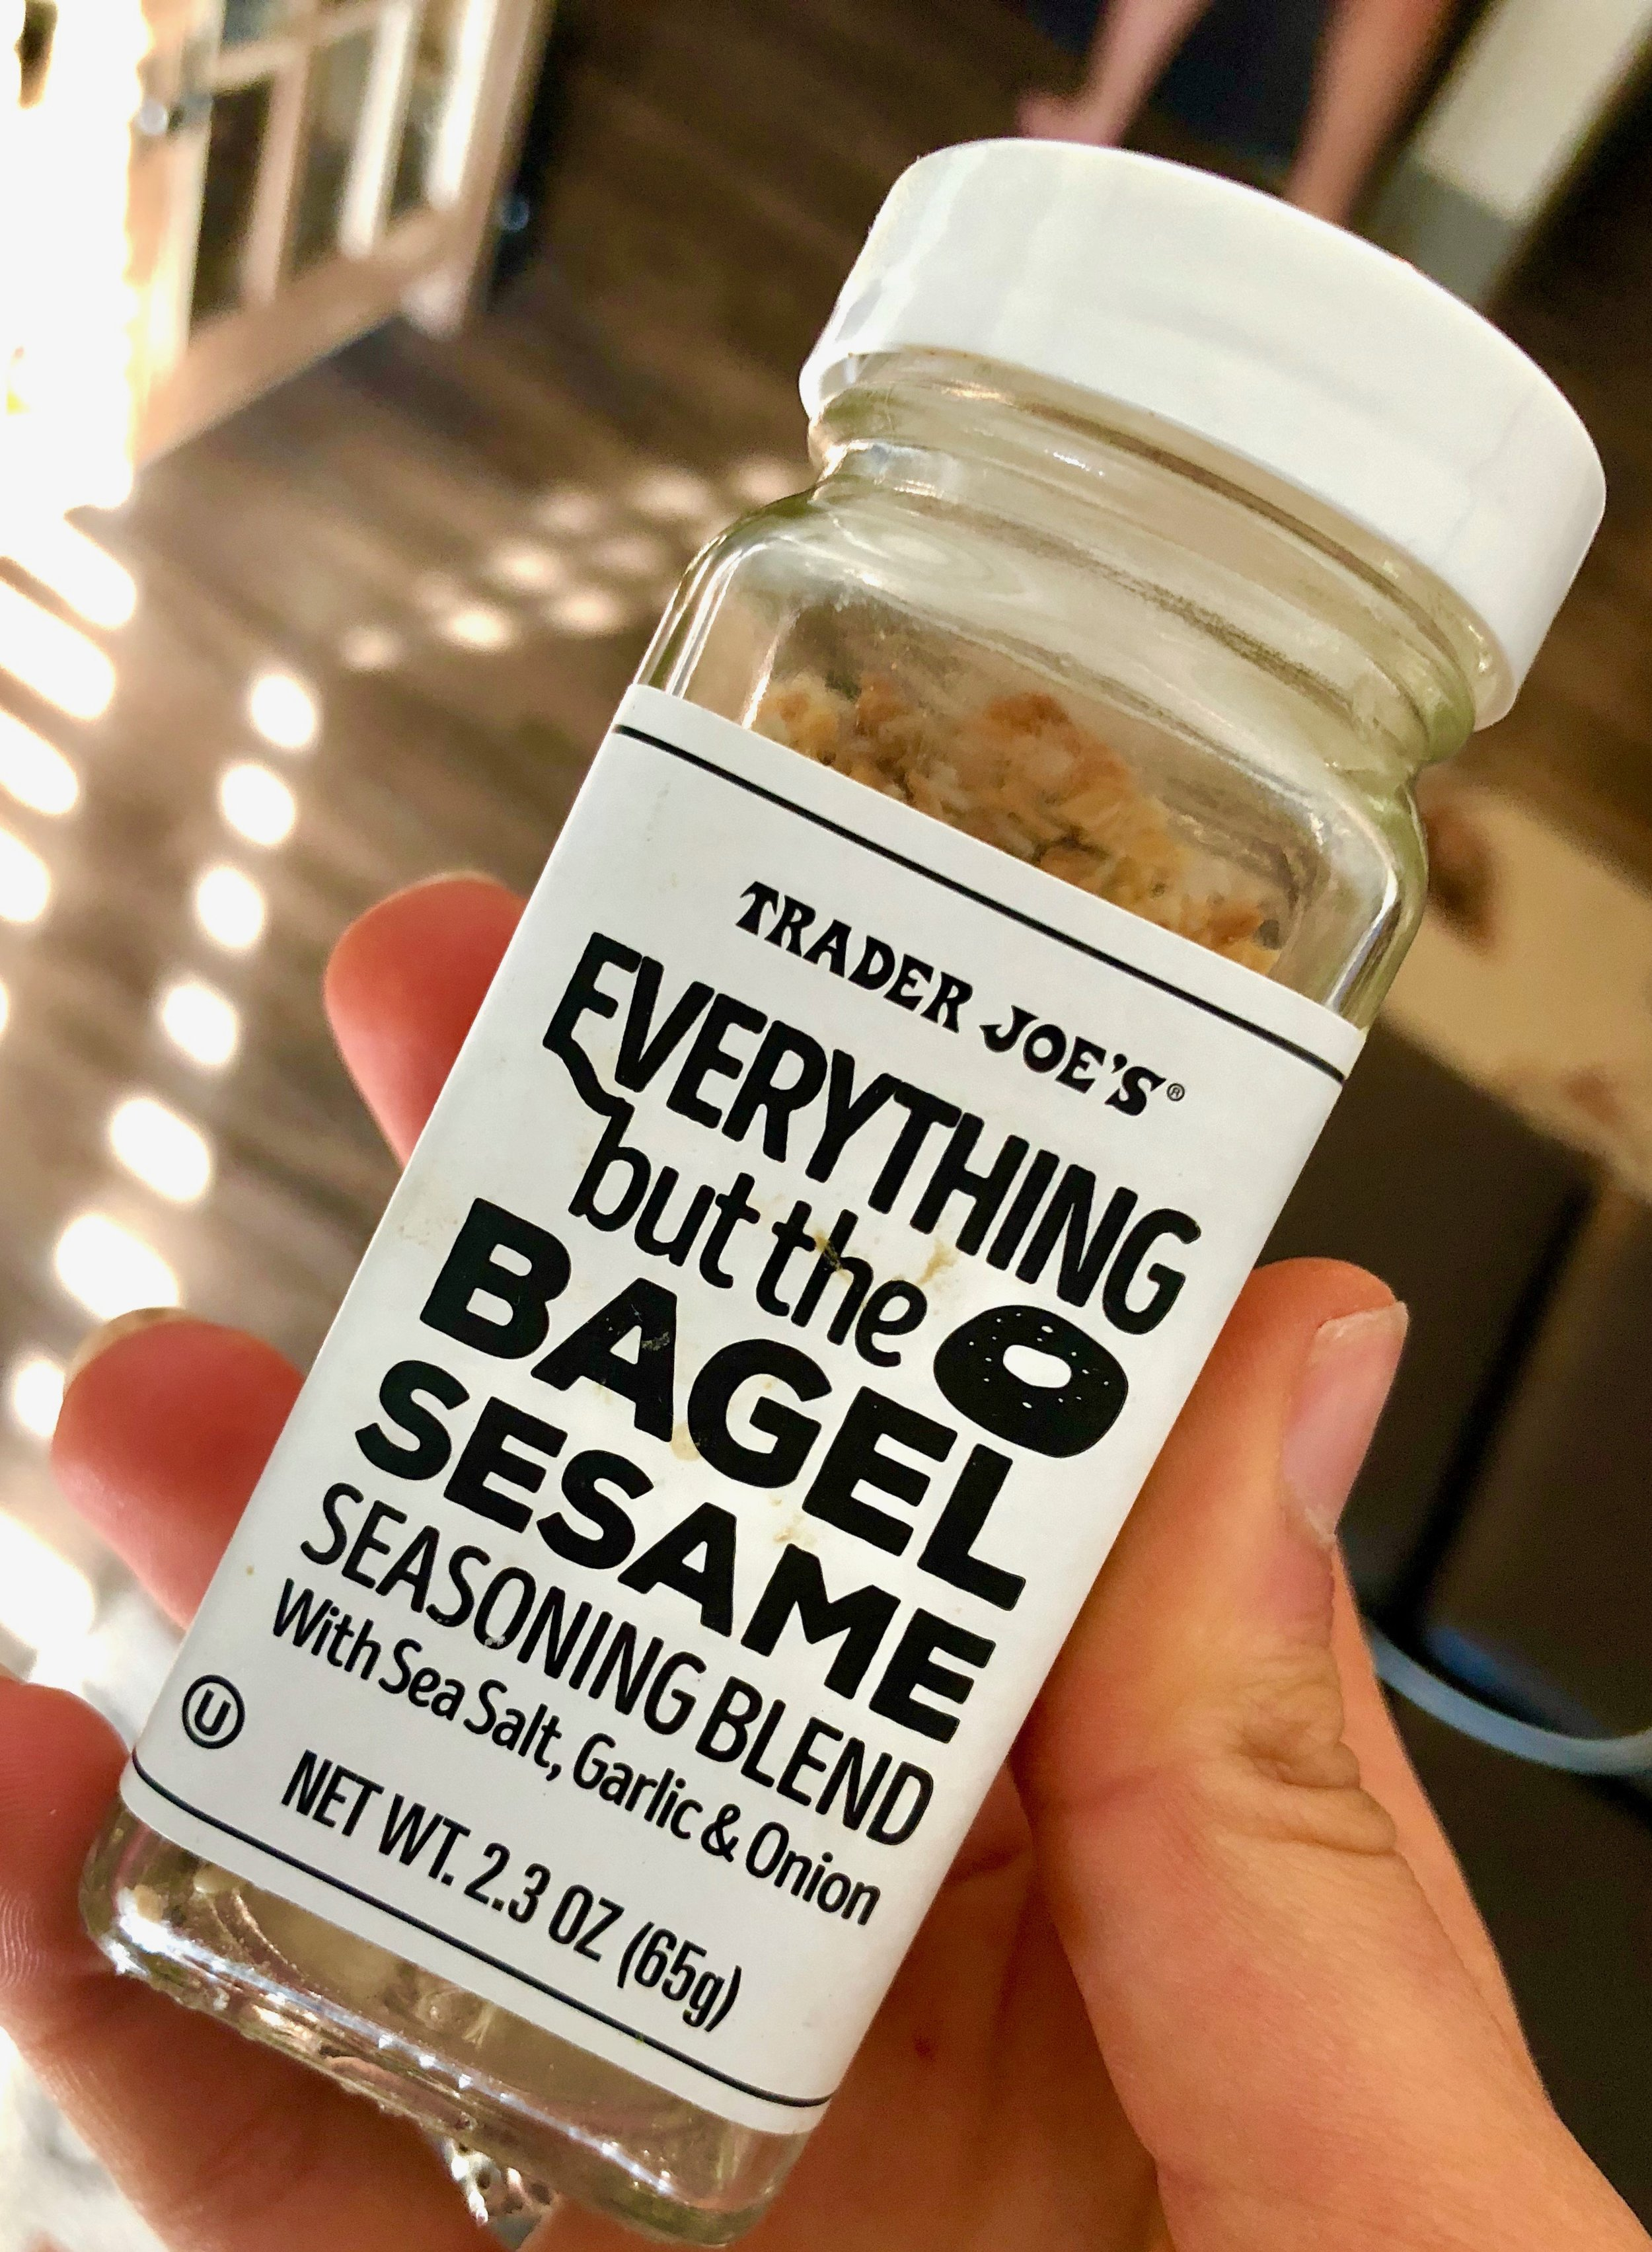 everything. but. the. bagel. seasoning. OH MY GOSH. This stuff changed the seasoning game for me. It's garlic and onion and herb seasoning all in one in the best way. It literally takes any vegetable, chicken, potato, eggs, avocado toast alllll to the next level!!! Seriously, I stay stocked with this.